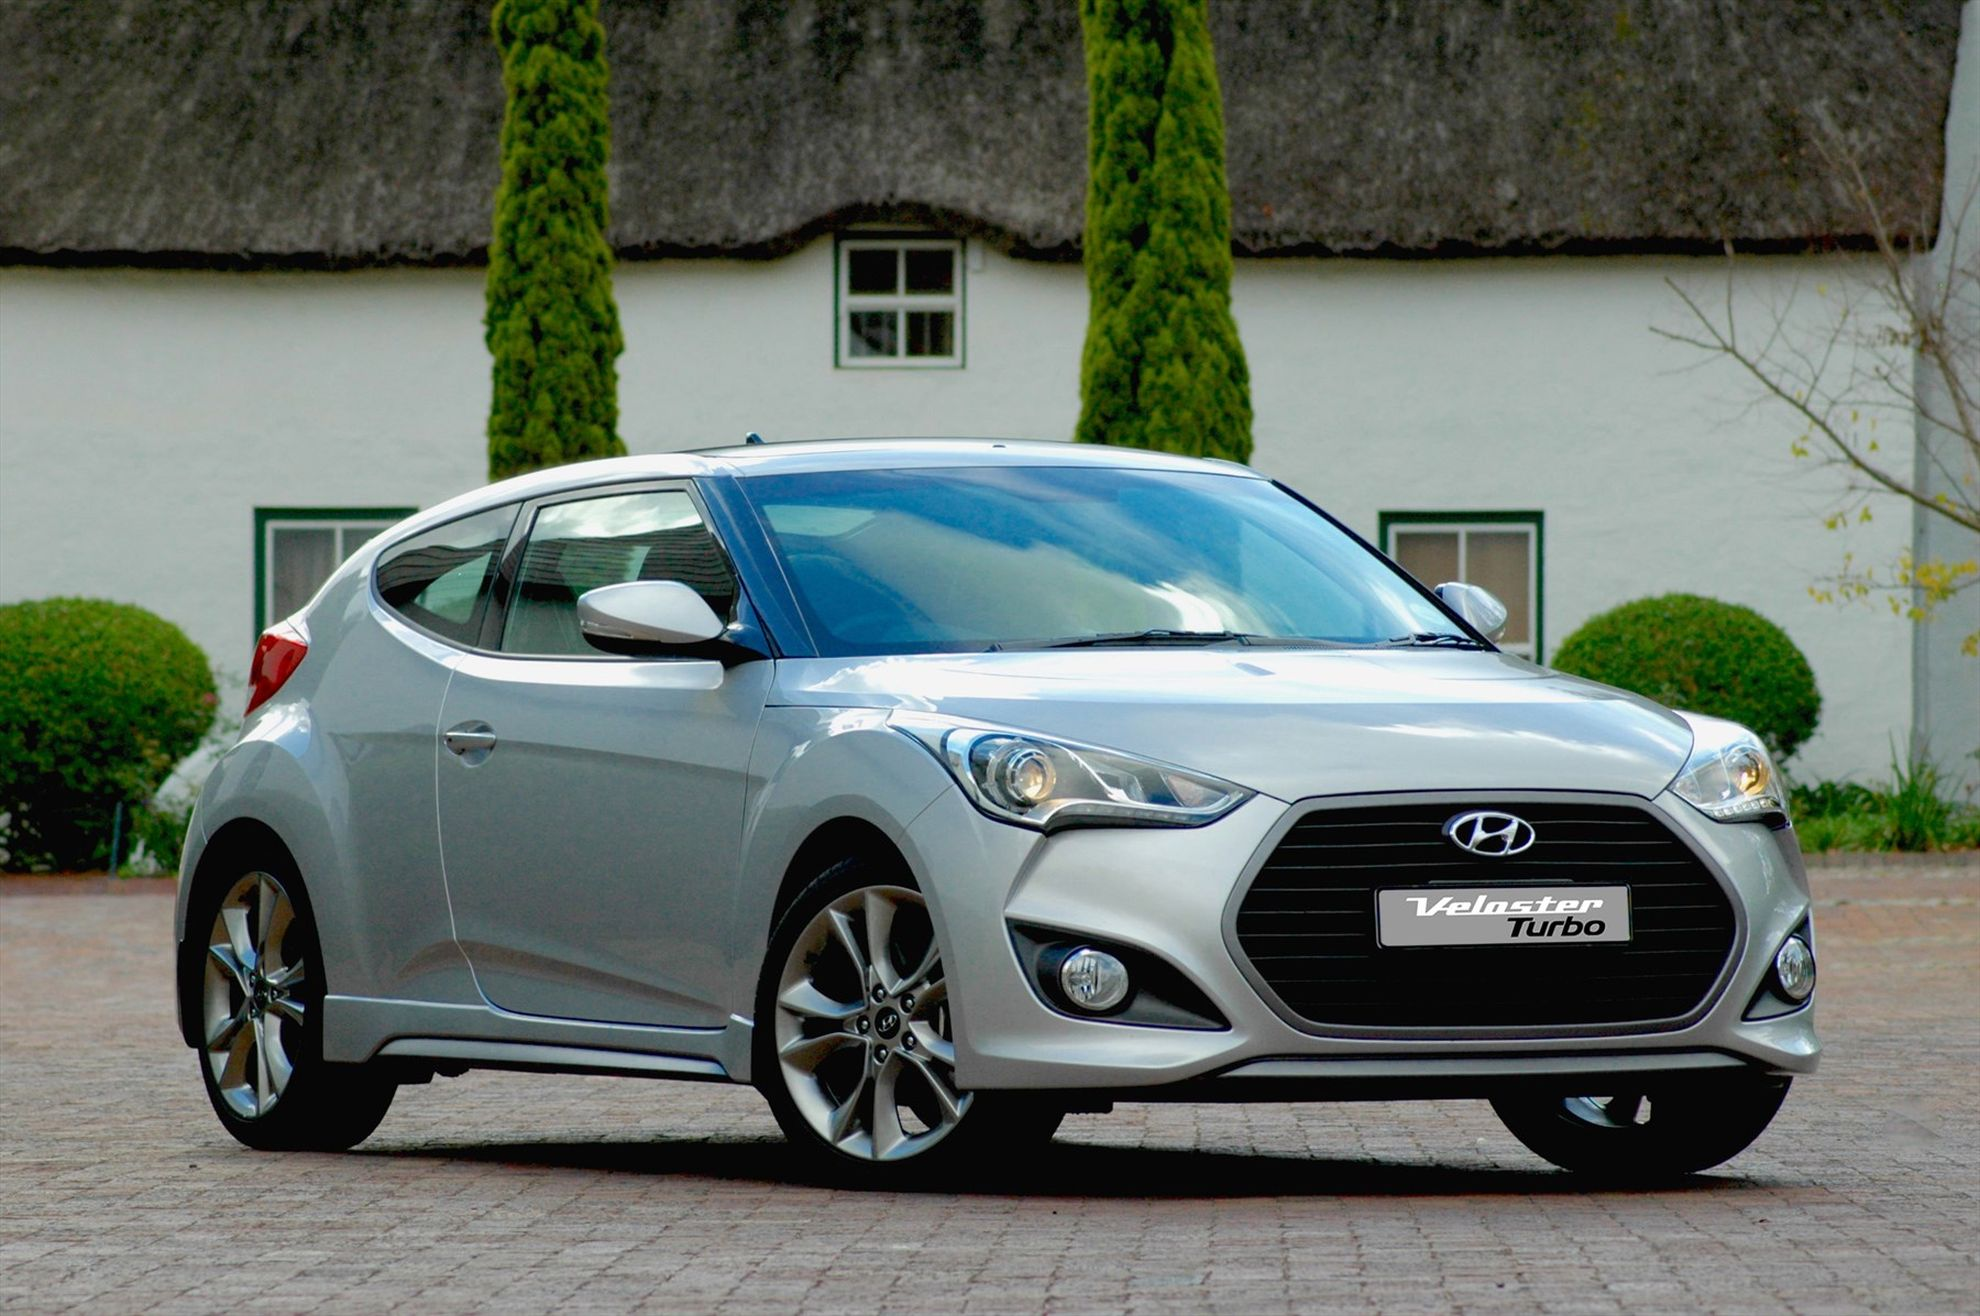 hyundai veloster gets a boost from 150 kw turbo engine. Black Bedroom Furniture Sets. Home Design Ideas